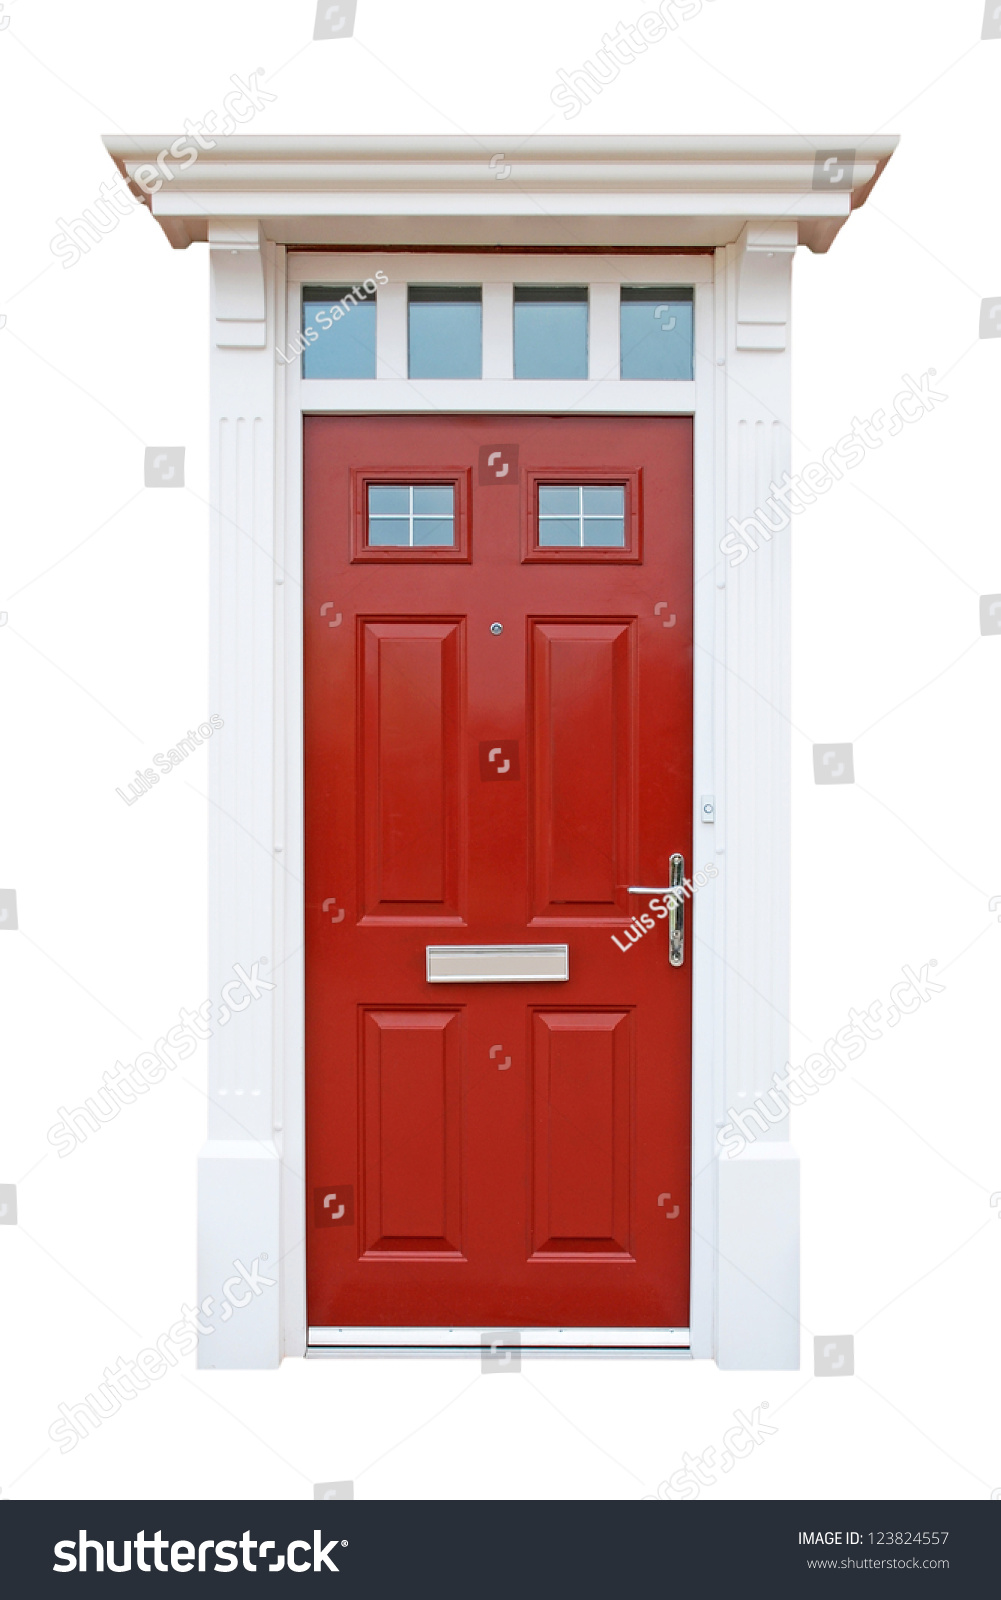 gorgeous red british house door (isolated on white background)  sc 1 st  Shutterstock & Gorgeous Red British House Door Isolated Stock Photo (100% Legal ...